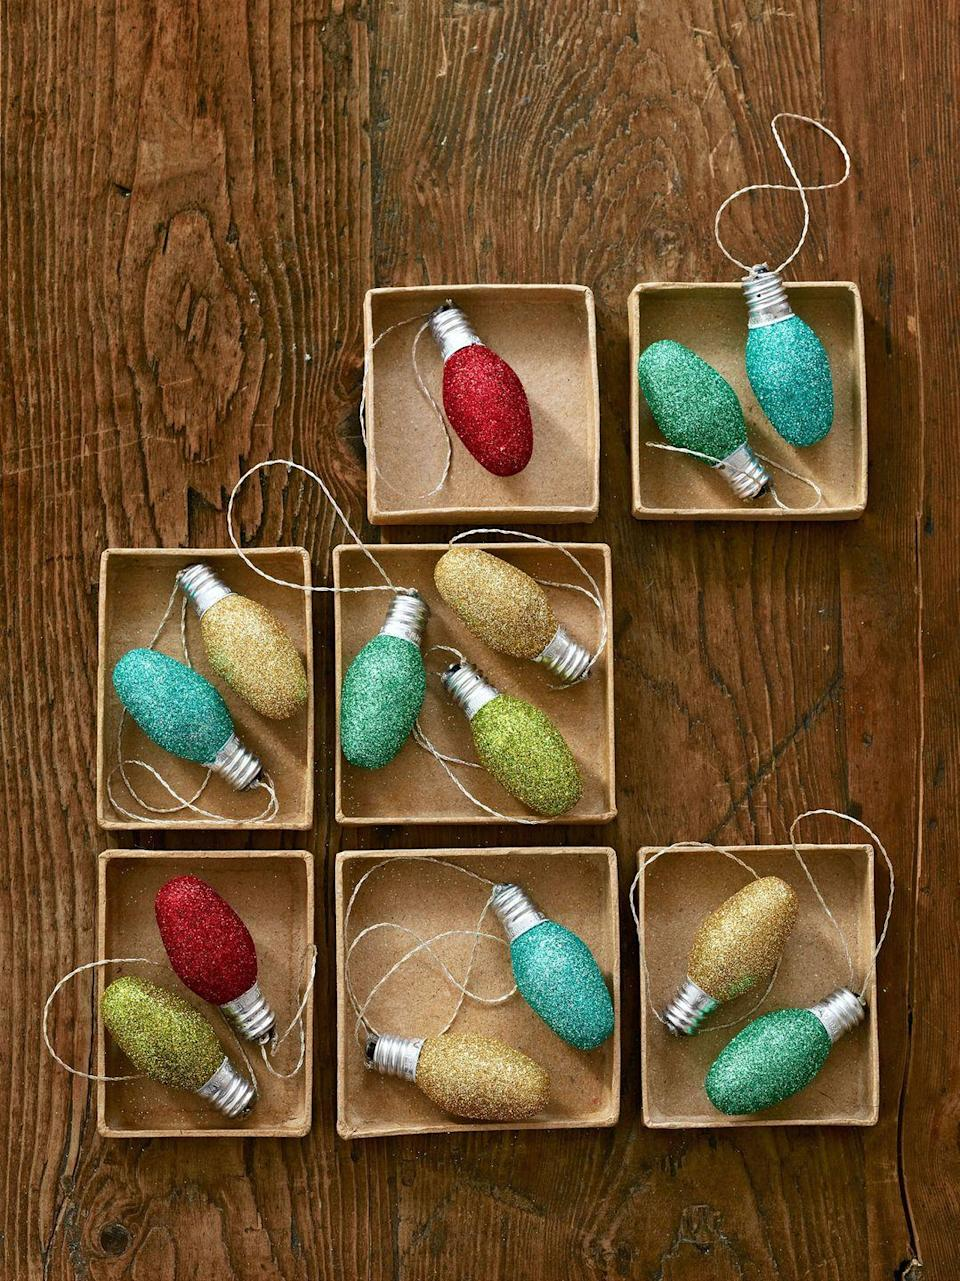 """<p>These shimmery ornaments get their twinkle from a coat of glitter, so there's no chance of one burning out.</p><p>Get the tutorial at <em><a href=""""https://www.countryliving.com/diy-crafts/how-to/g1798/recycled-crafts-holiday-decor/?slide=1"""" rel=""""nofollow noopener"""" target=""""_blank"""" data-ylk=""""slk:Country Living"""" class=""""link rapid-noclick-resp"""">Country Living</a>.</em></p>"""